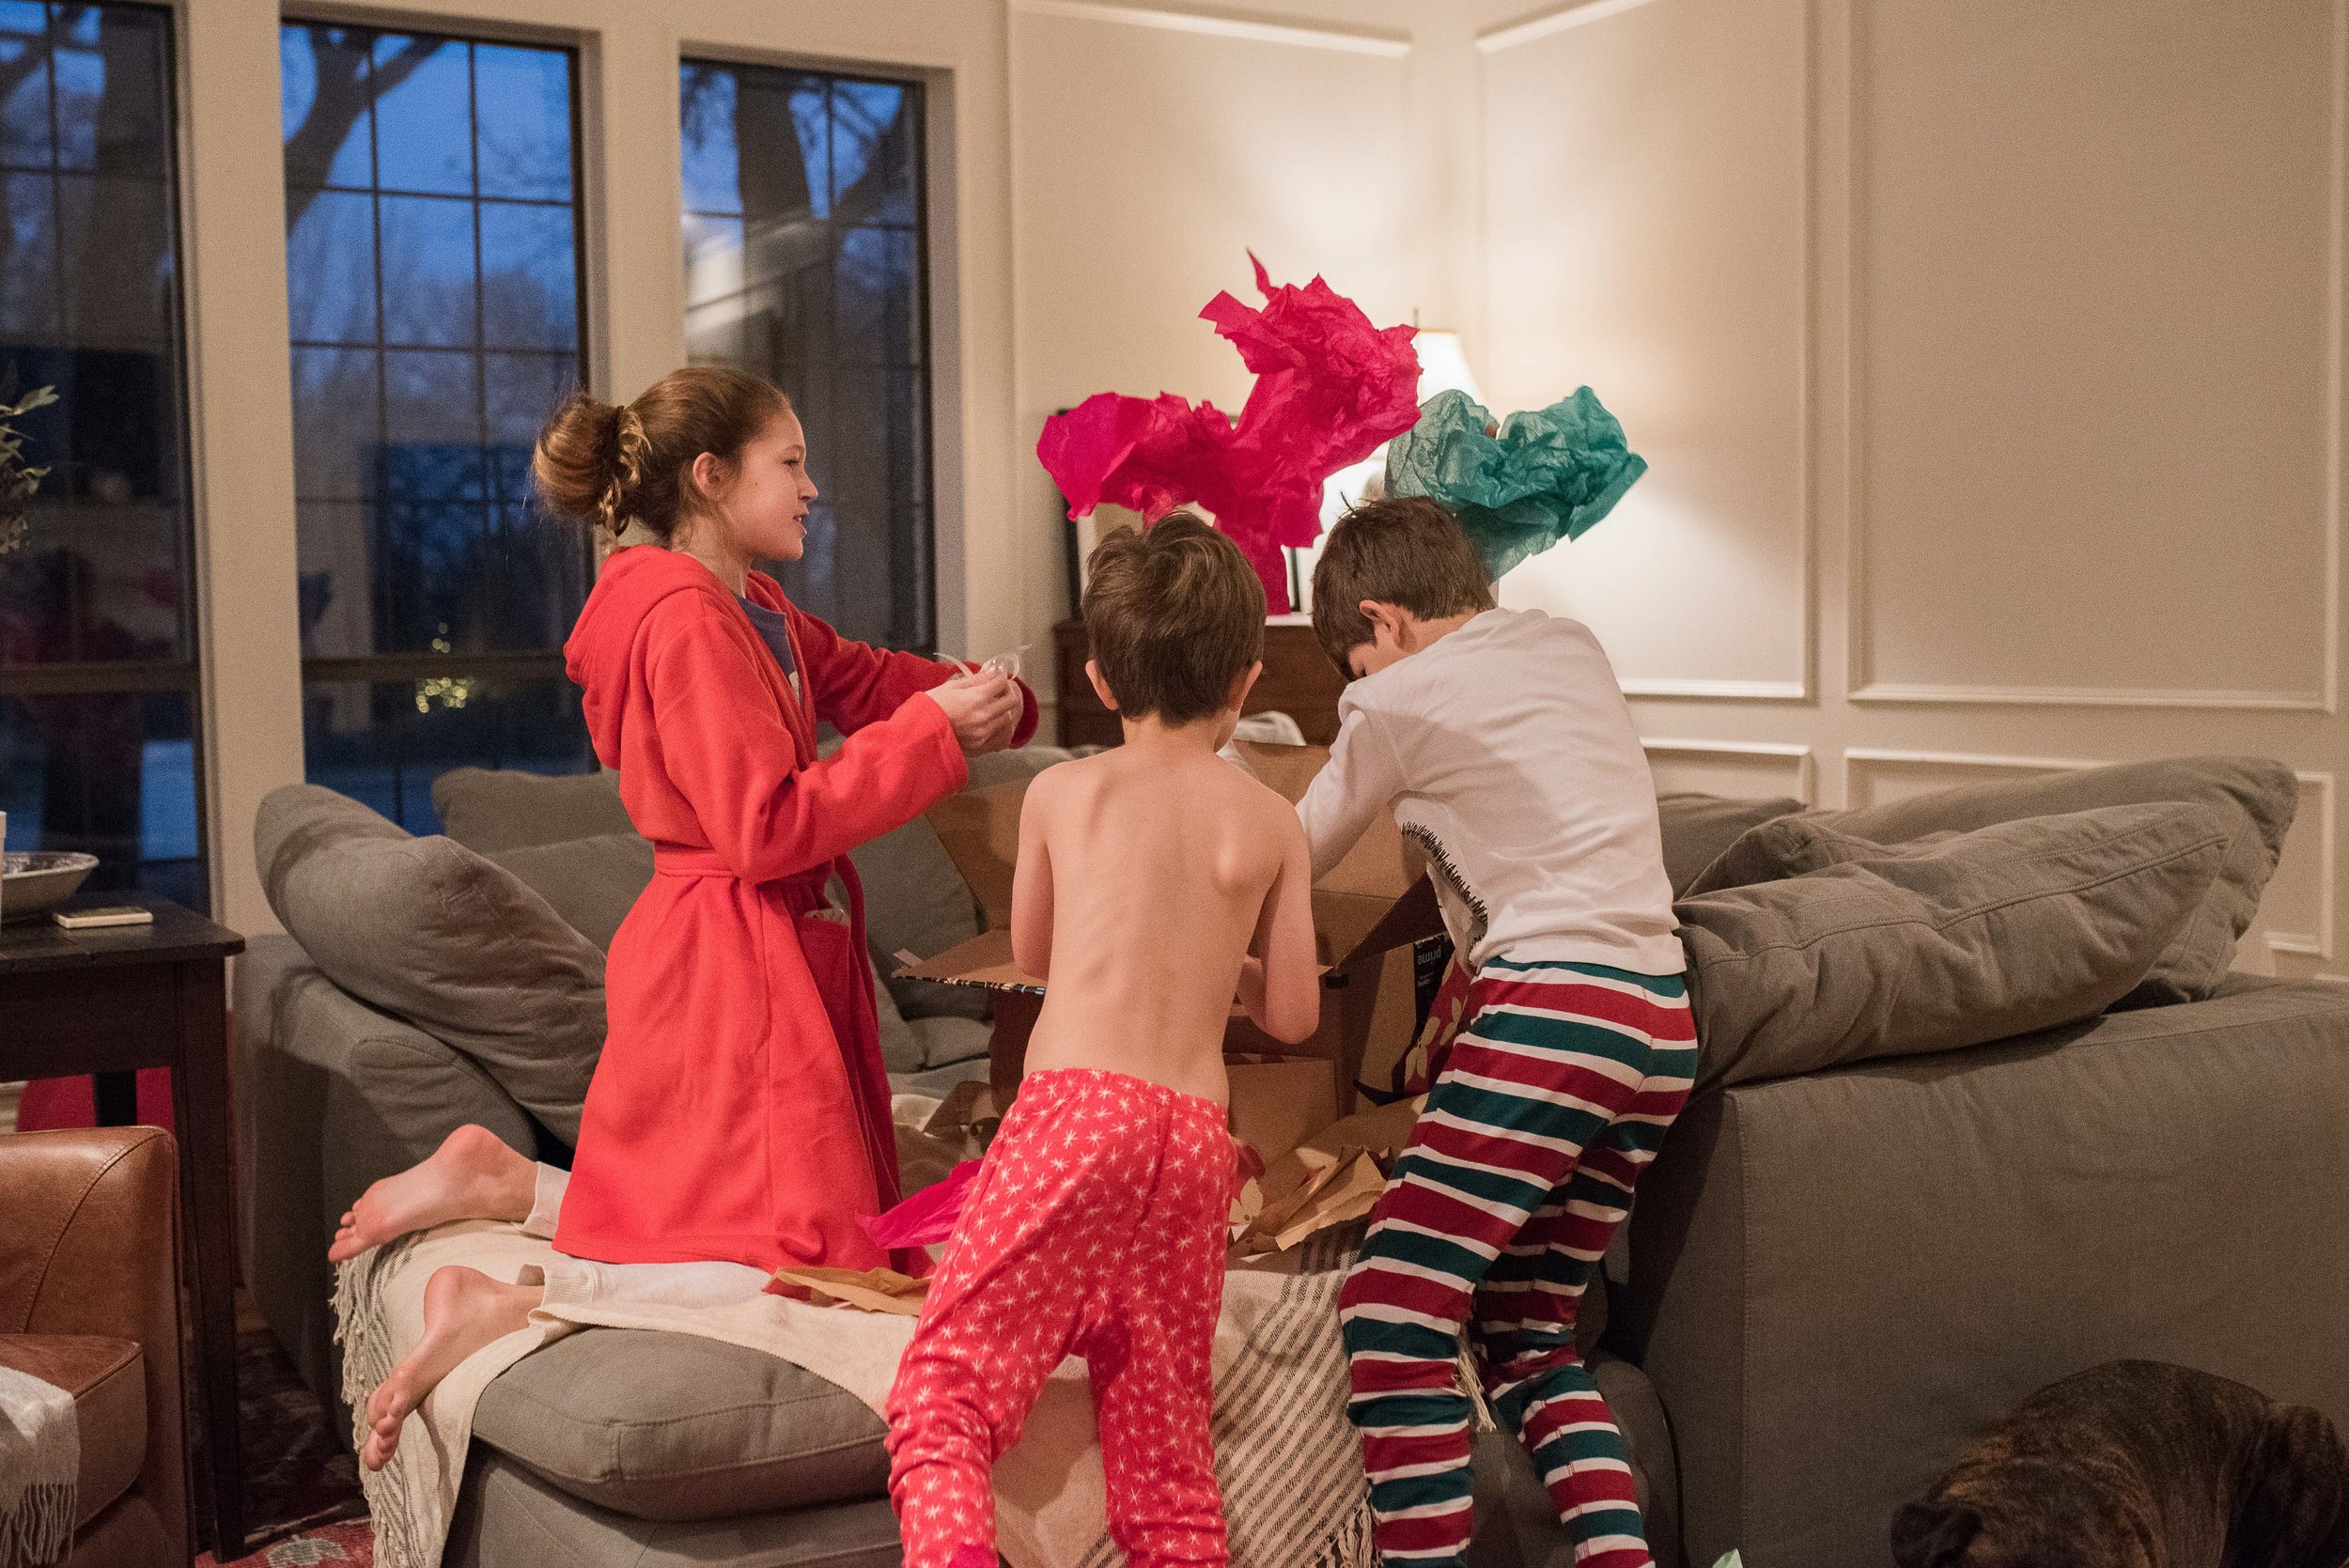 After exploring the stockings that Santa stuffed, the kids got to open one joint present. Which led to a bit of a scavenger hunt.